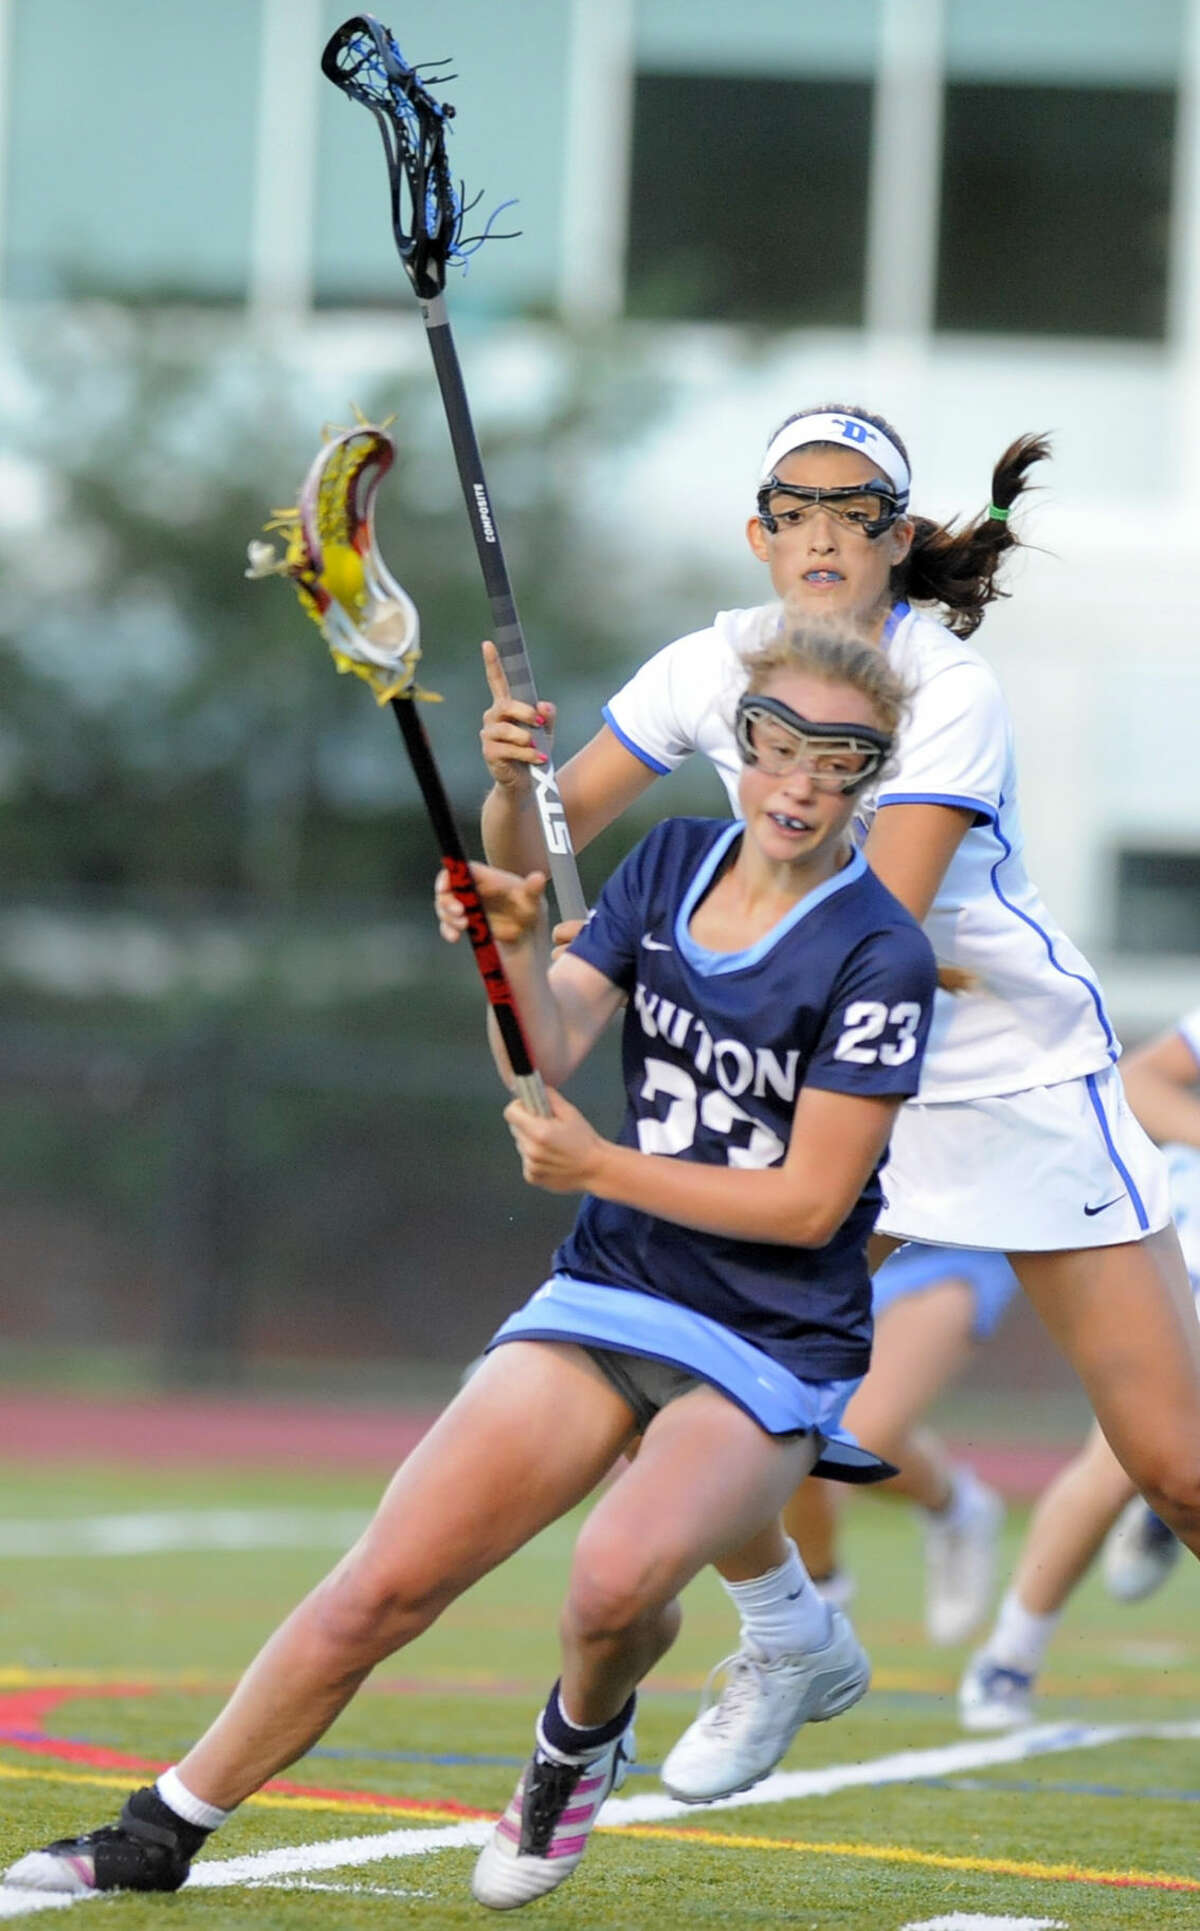 Wilton Paisley England looks for an opening while being defended by Darien Emma Lasko in a CIAC Class L girls lacrosse semifinal game at Taft Field in Fairfield, Conn. on June 7, 2016. Darien won 8-6.